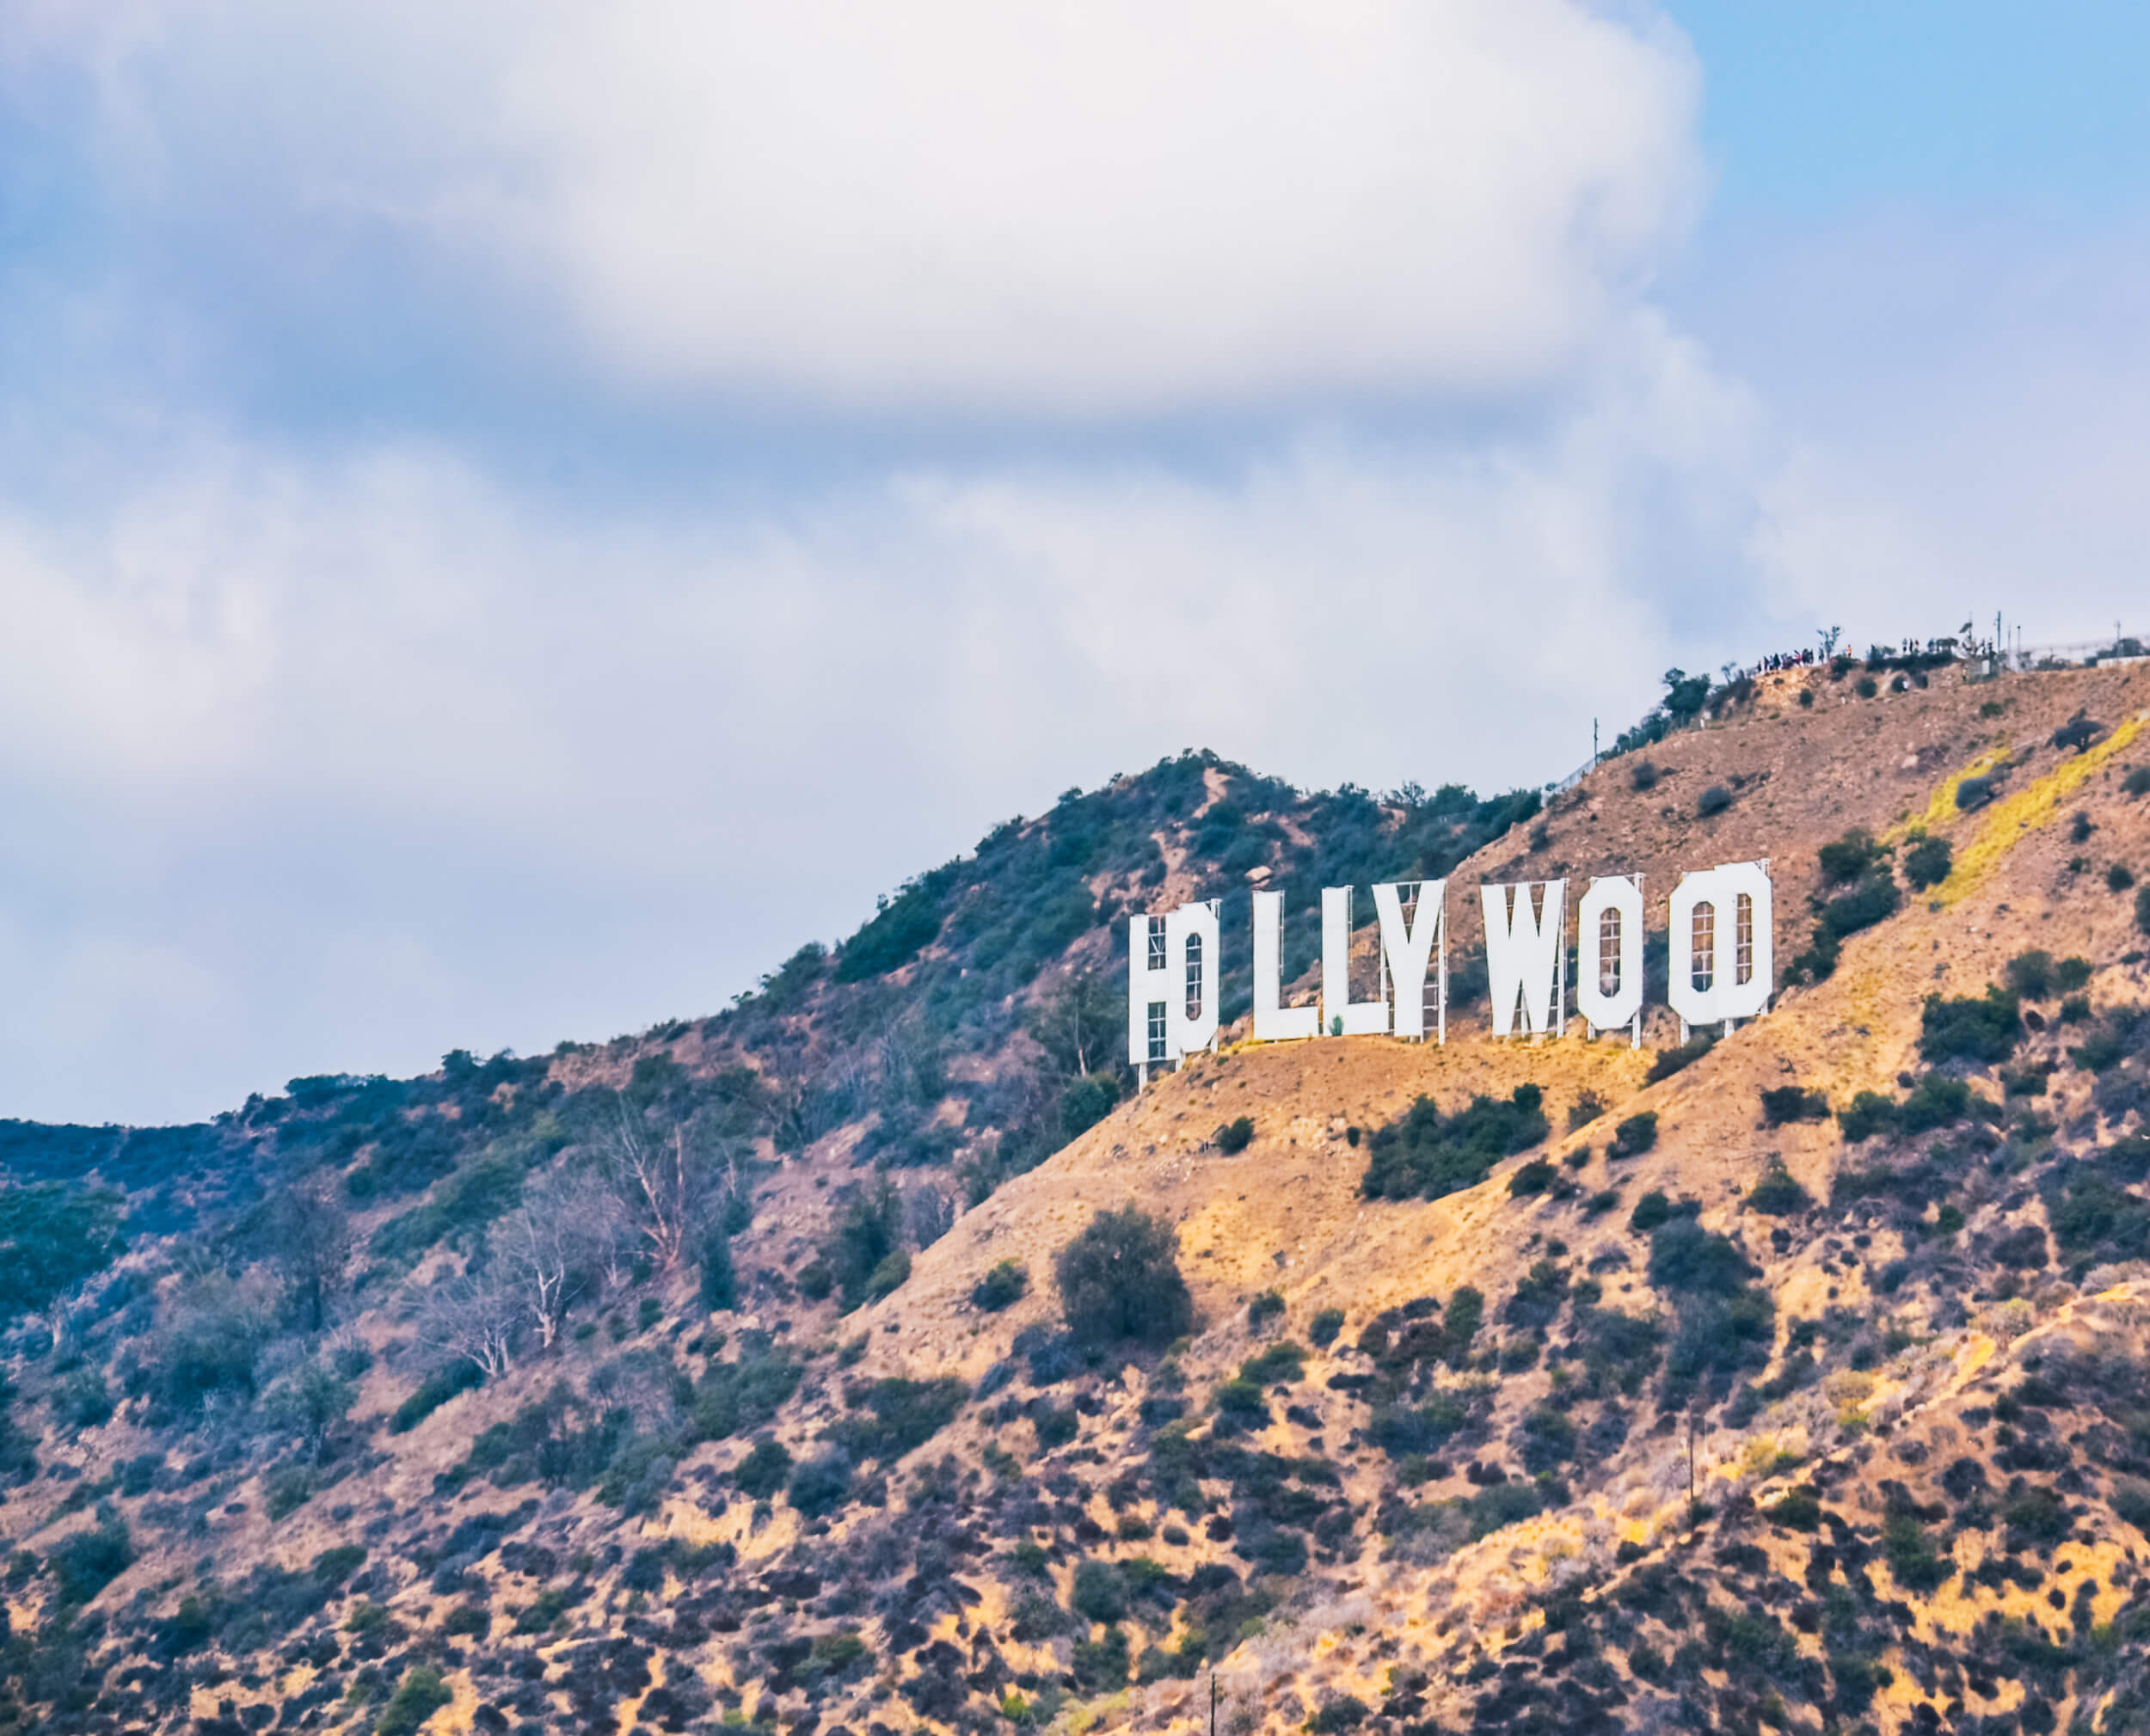 Hike to Hollywood sign in Griffith Park